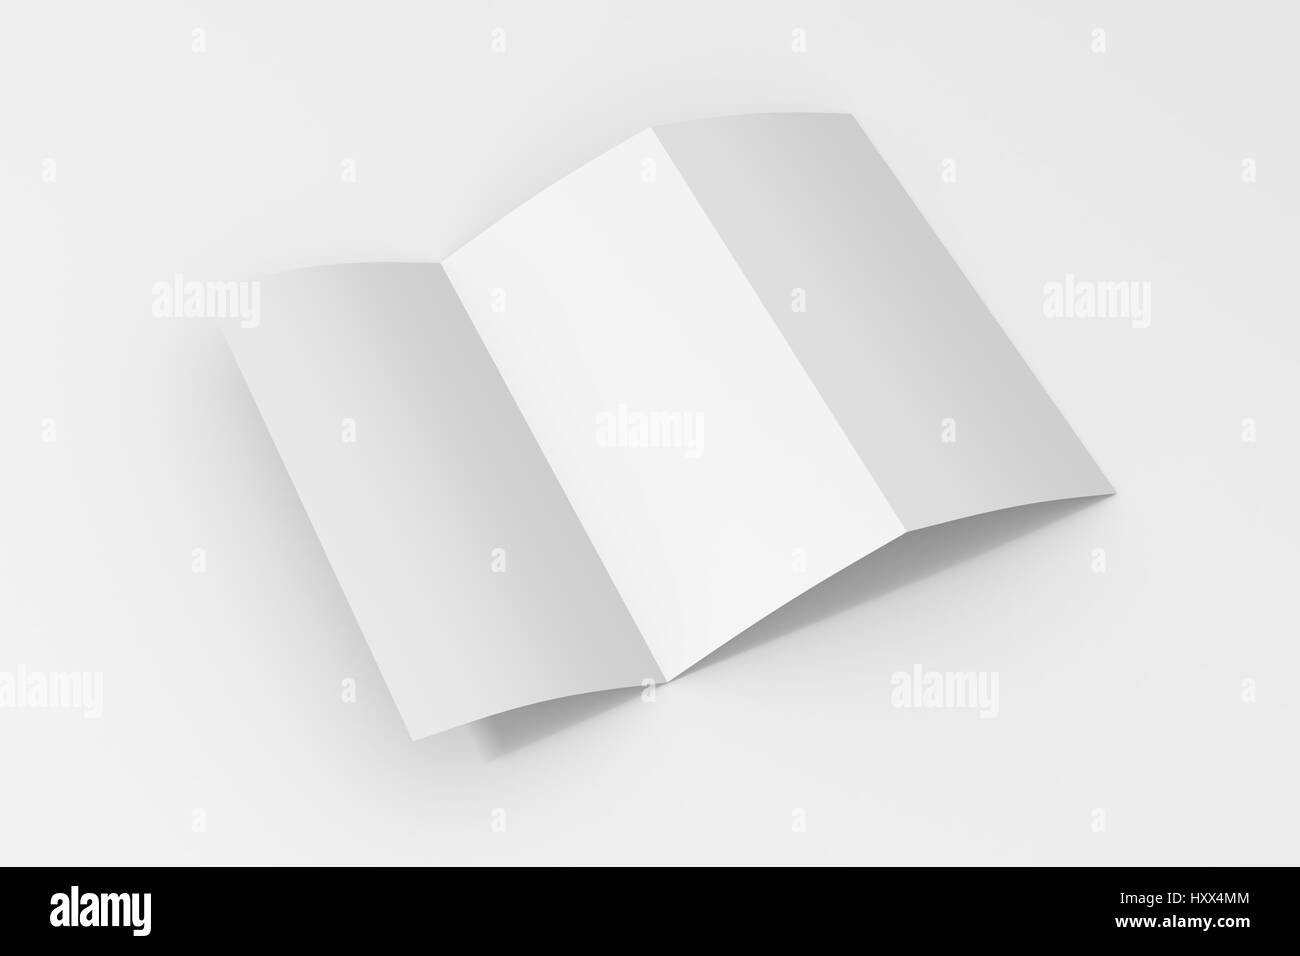 blank trifold paper brochure on white background with soft shadows and highlights stock image